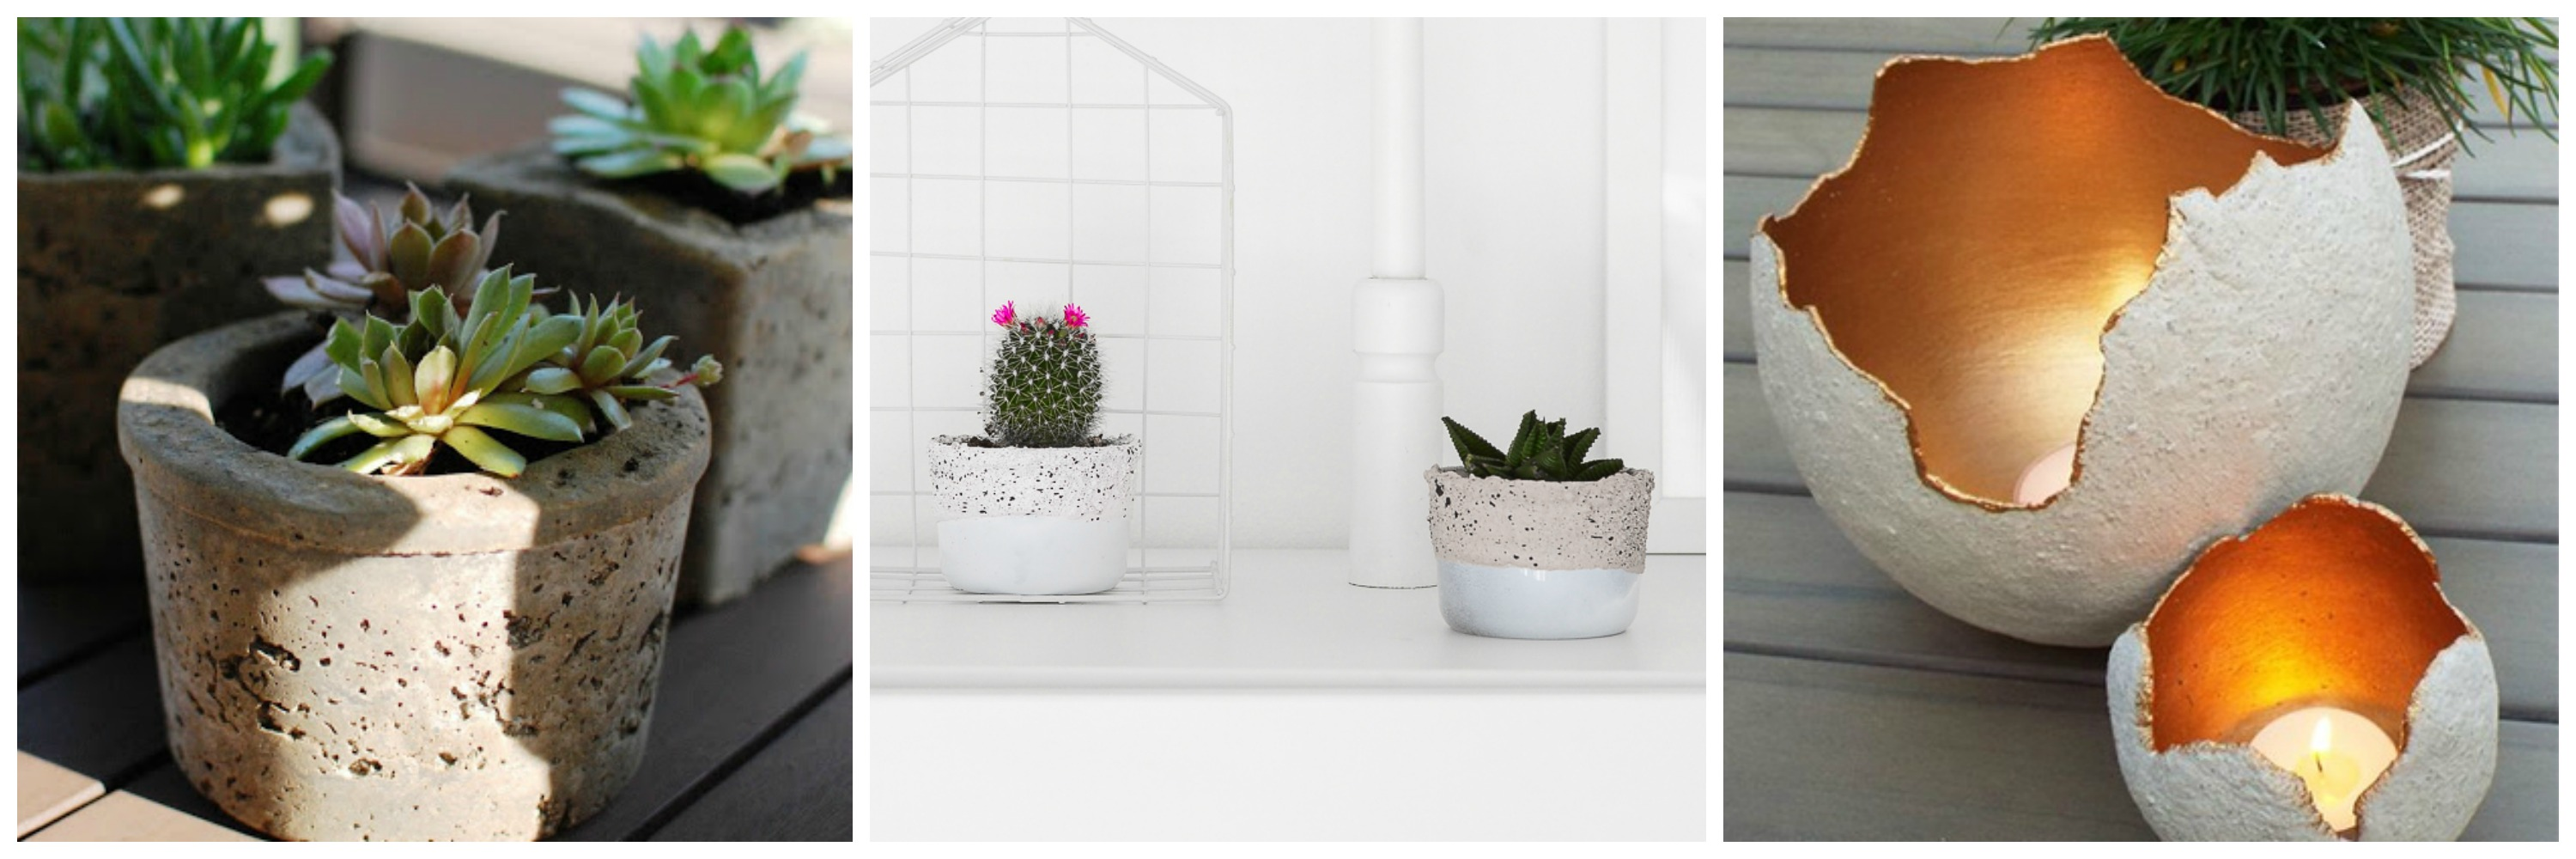 DIY Cement Pot Magnolia Market DIY